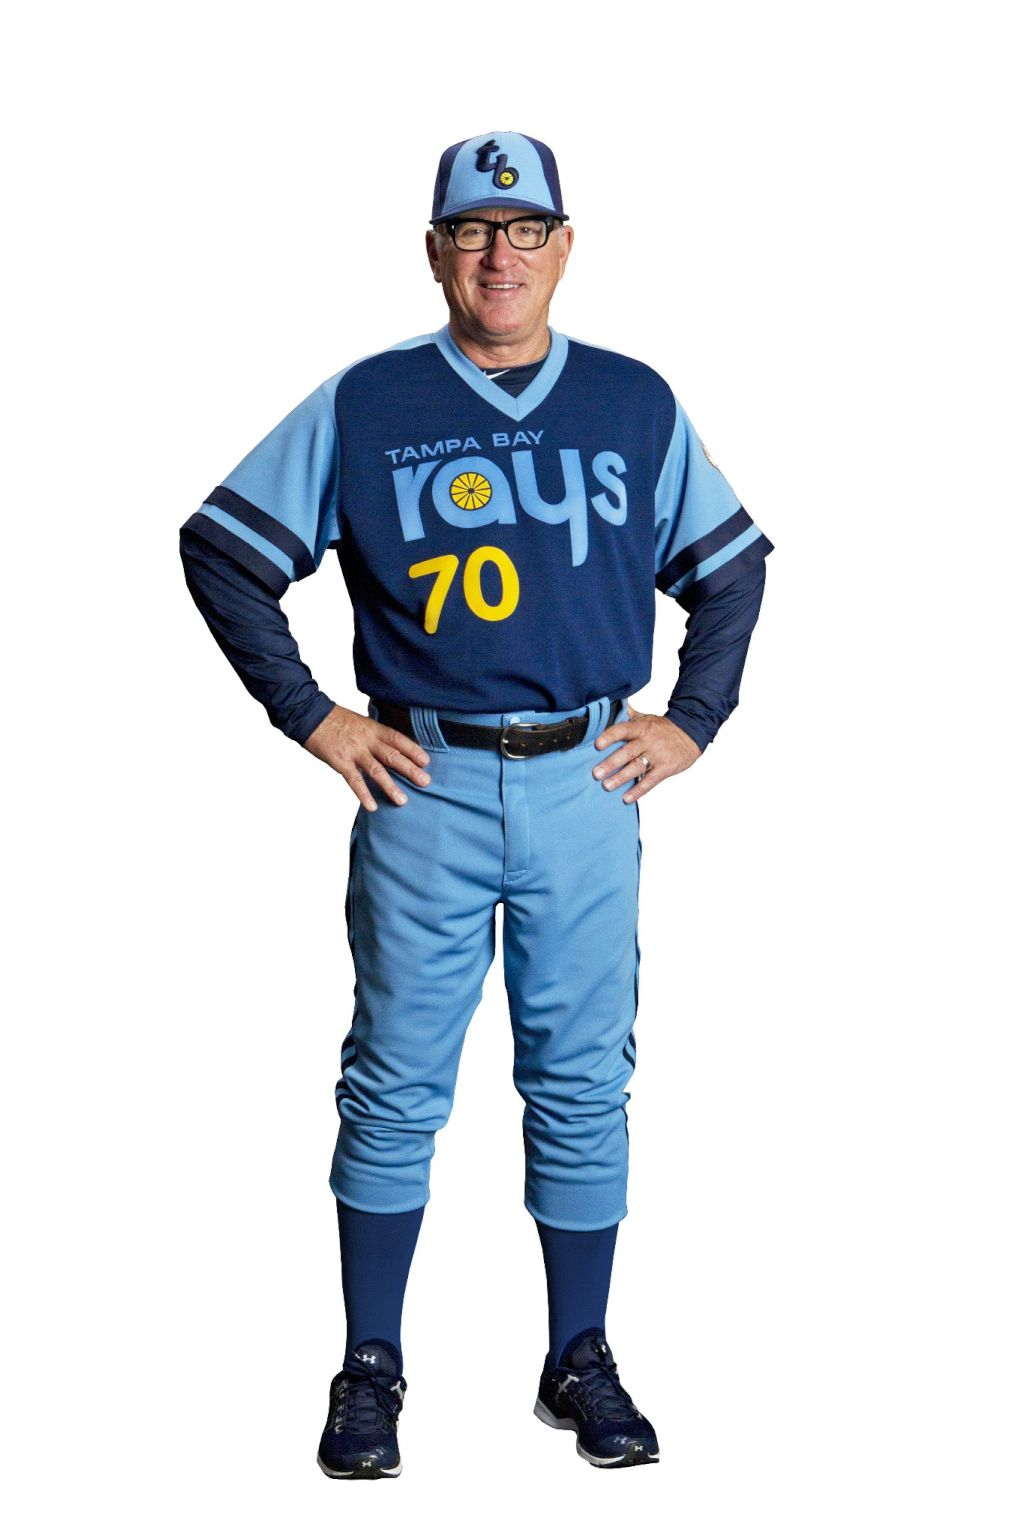 competitive price 66c82 ba7ee Tampa Bay Rays to wear 1979 fauxback uniforms on June 30 ...